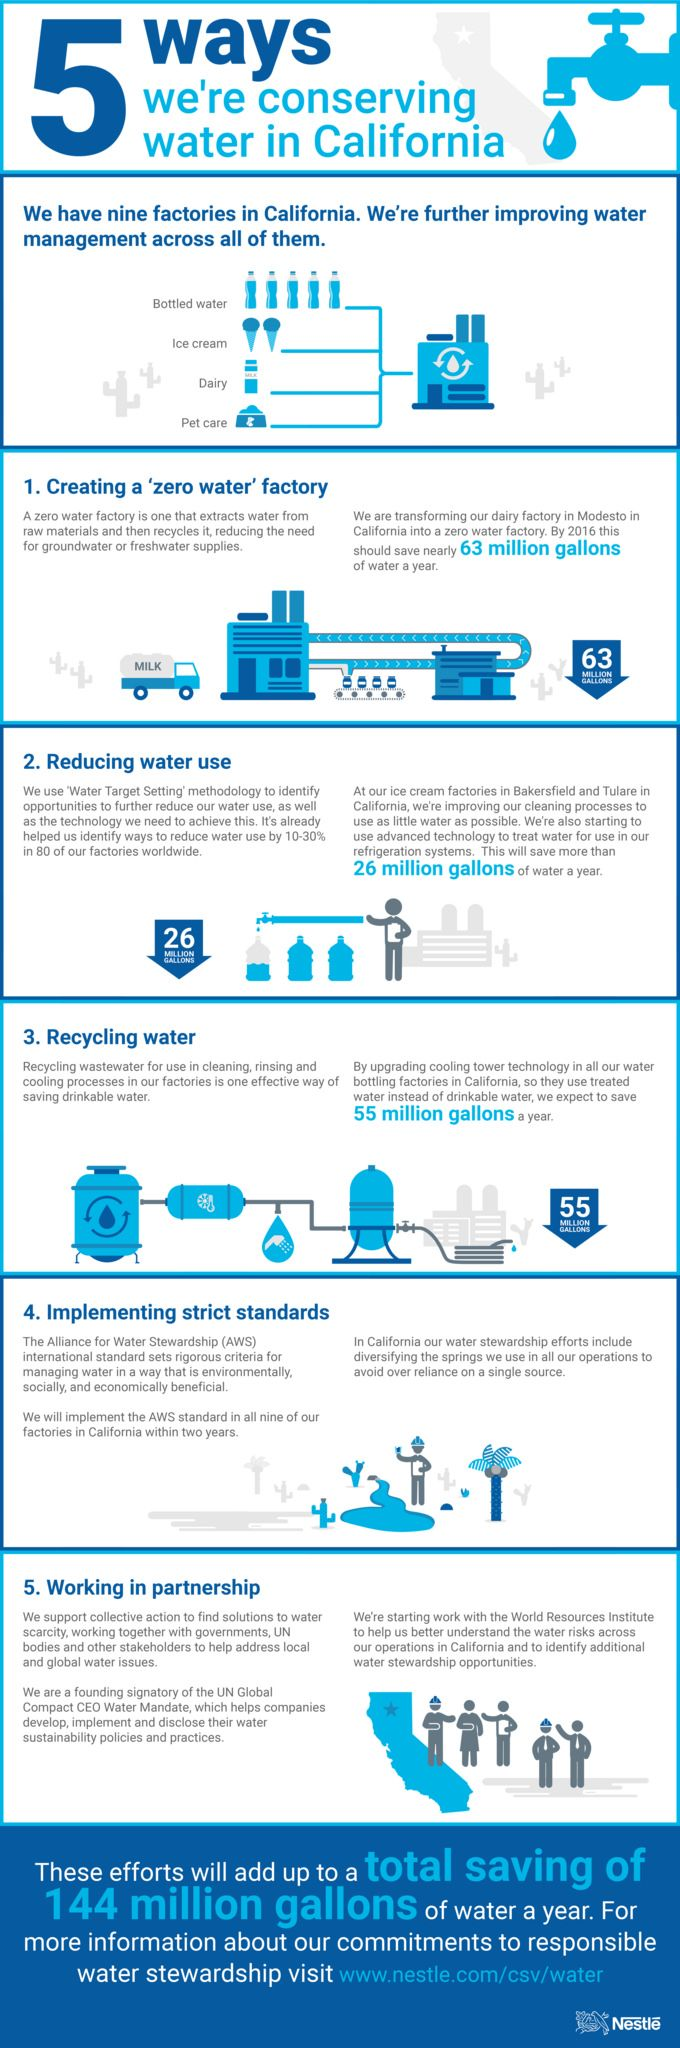 How we are conserving water in California   As the US state of California experiences another year of extreme drought, many people have expressed concern about the impact of our operations there. We understand that concern and we're intensifying our efforts to ensure we use water as efficiently as possible across all of our manufacturing operations, in California and beyond. Take a look at the infographic to find out more about what we're doing.